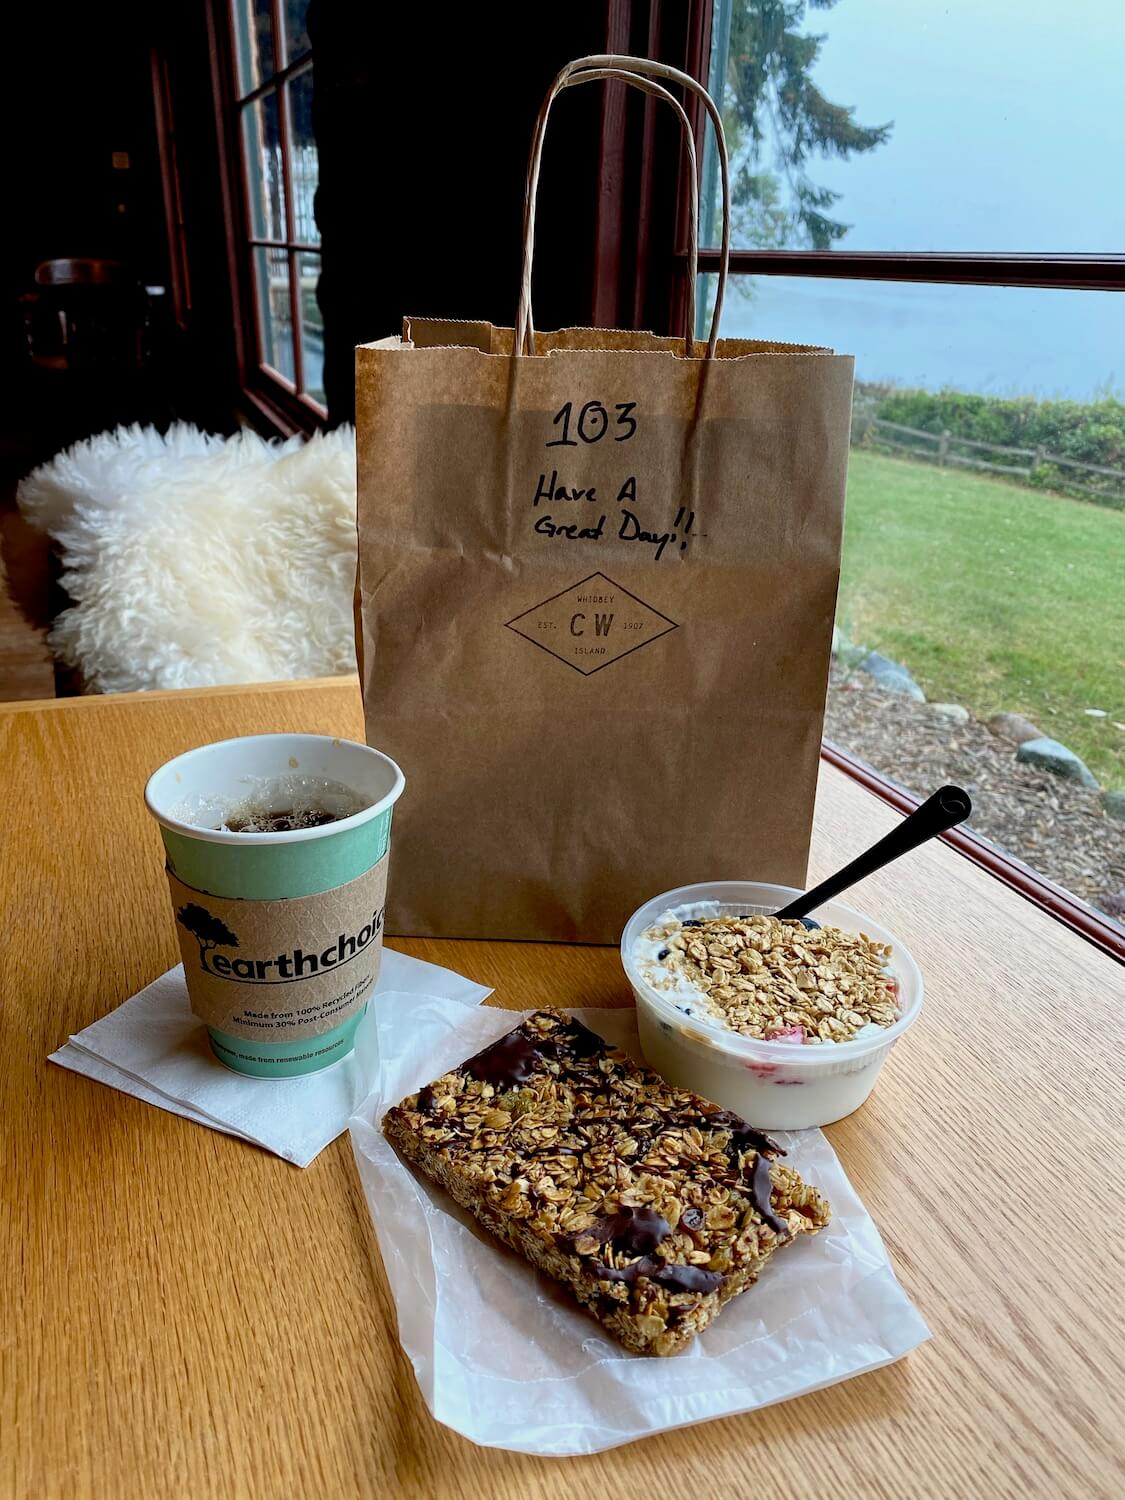 """A breakfast bag at Captain Whidbey is made from recycled paper and says, """"Have a great day."""" On the wood table is a cup of coffee in a to-go cup along with a granola chocolate bar as well as yogurt with a spoon in it. The chair on the other side of the table is draped with a fuzzy wool throw while the green grass and blue waters of Penn Cove are visible outside the window."""